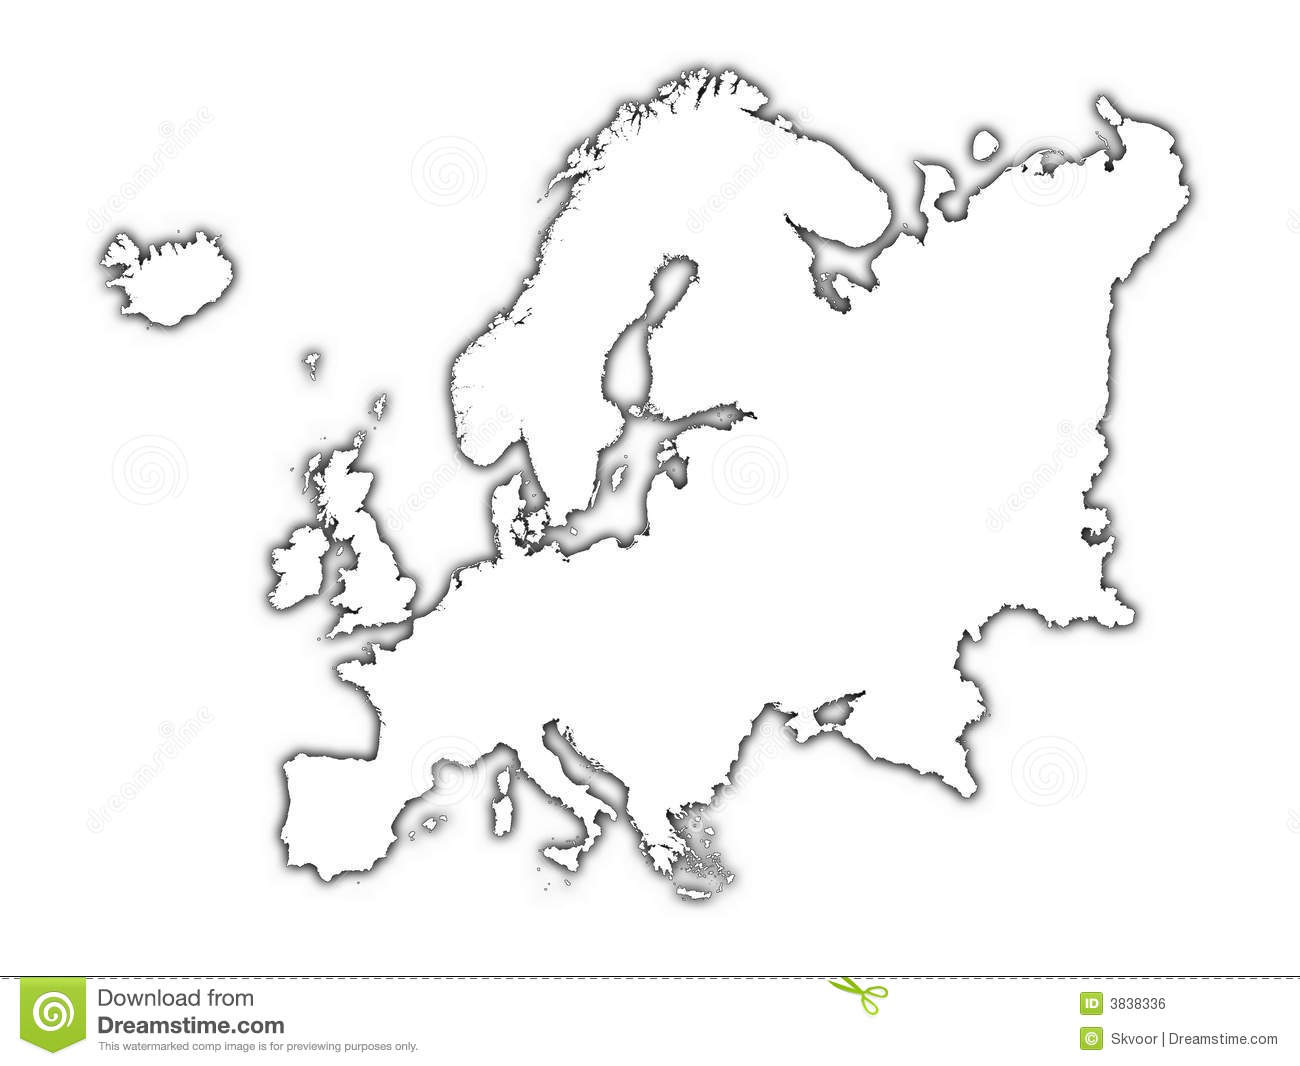 Picture of: Europe Outline Map With Shadow Stock Illustration Illustration Of Digital Borders 3838336